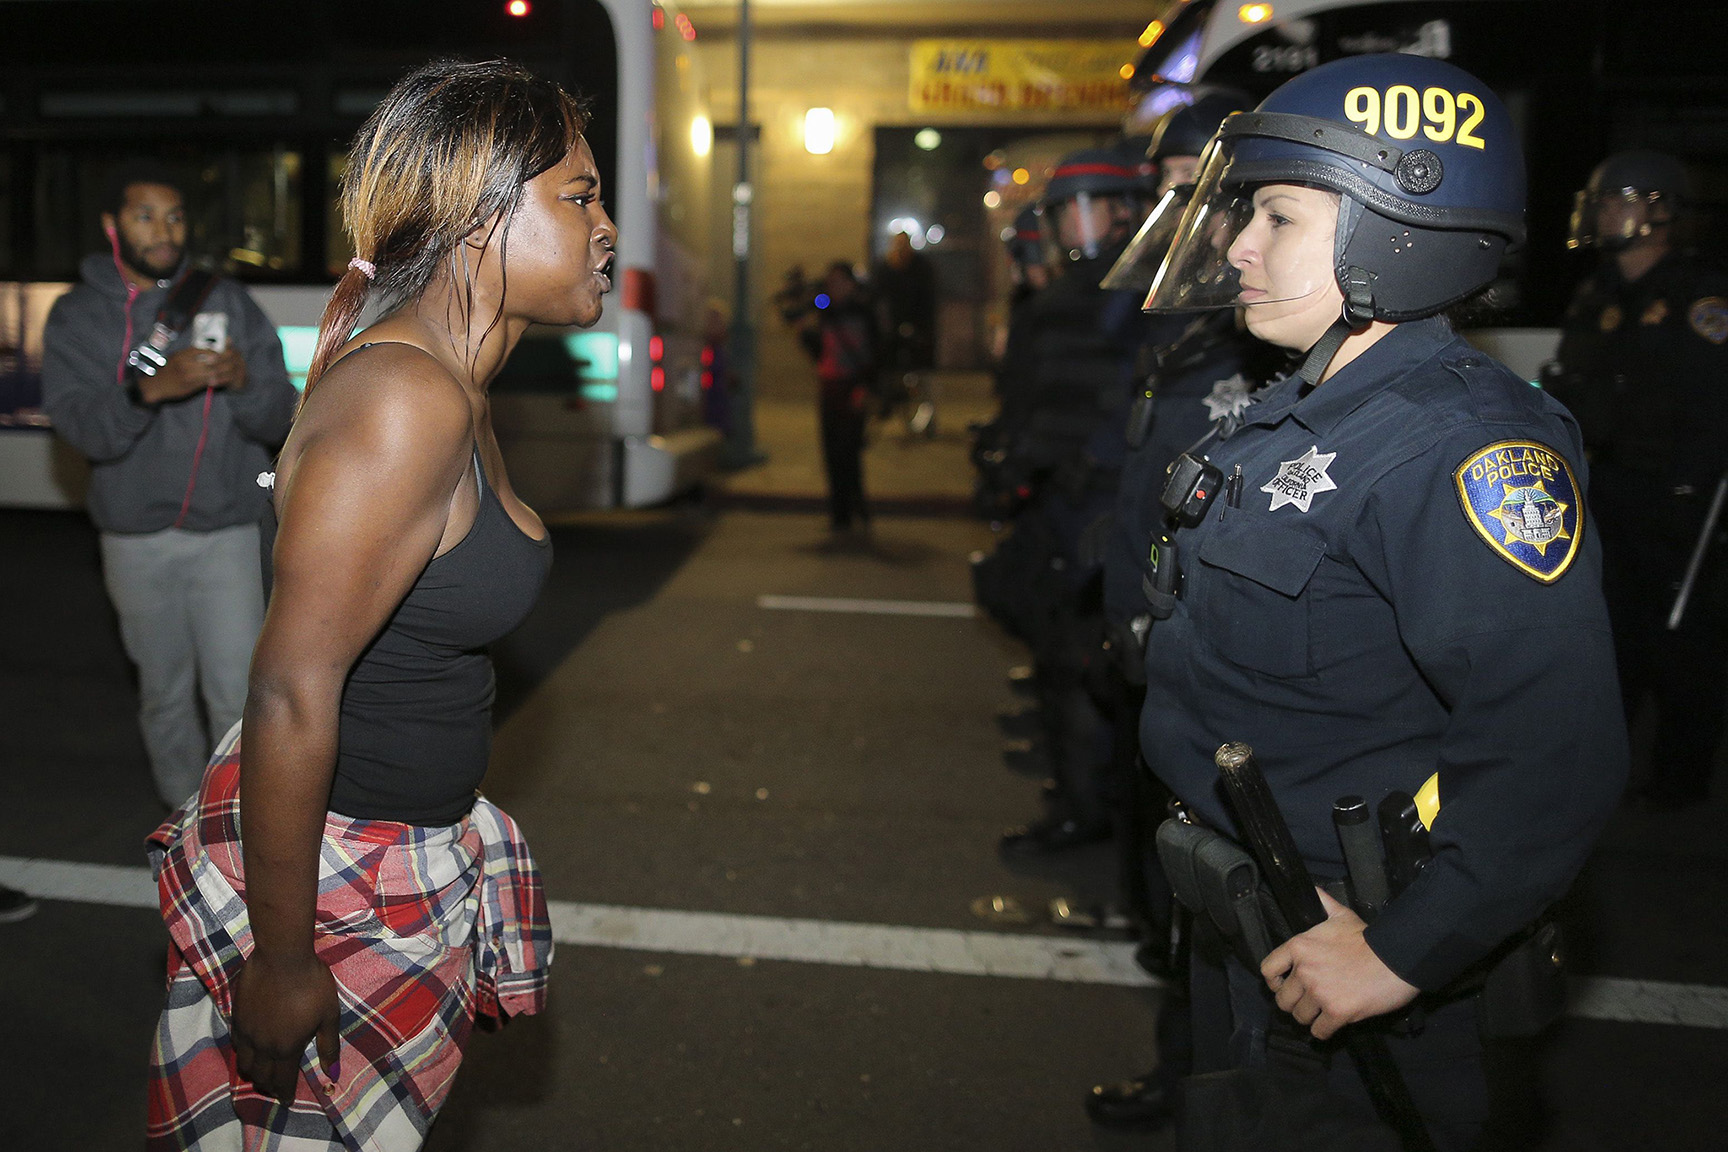 Amanda Ashe of Oakland faces off with a police officer during a demonstration in Oakland, California